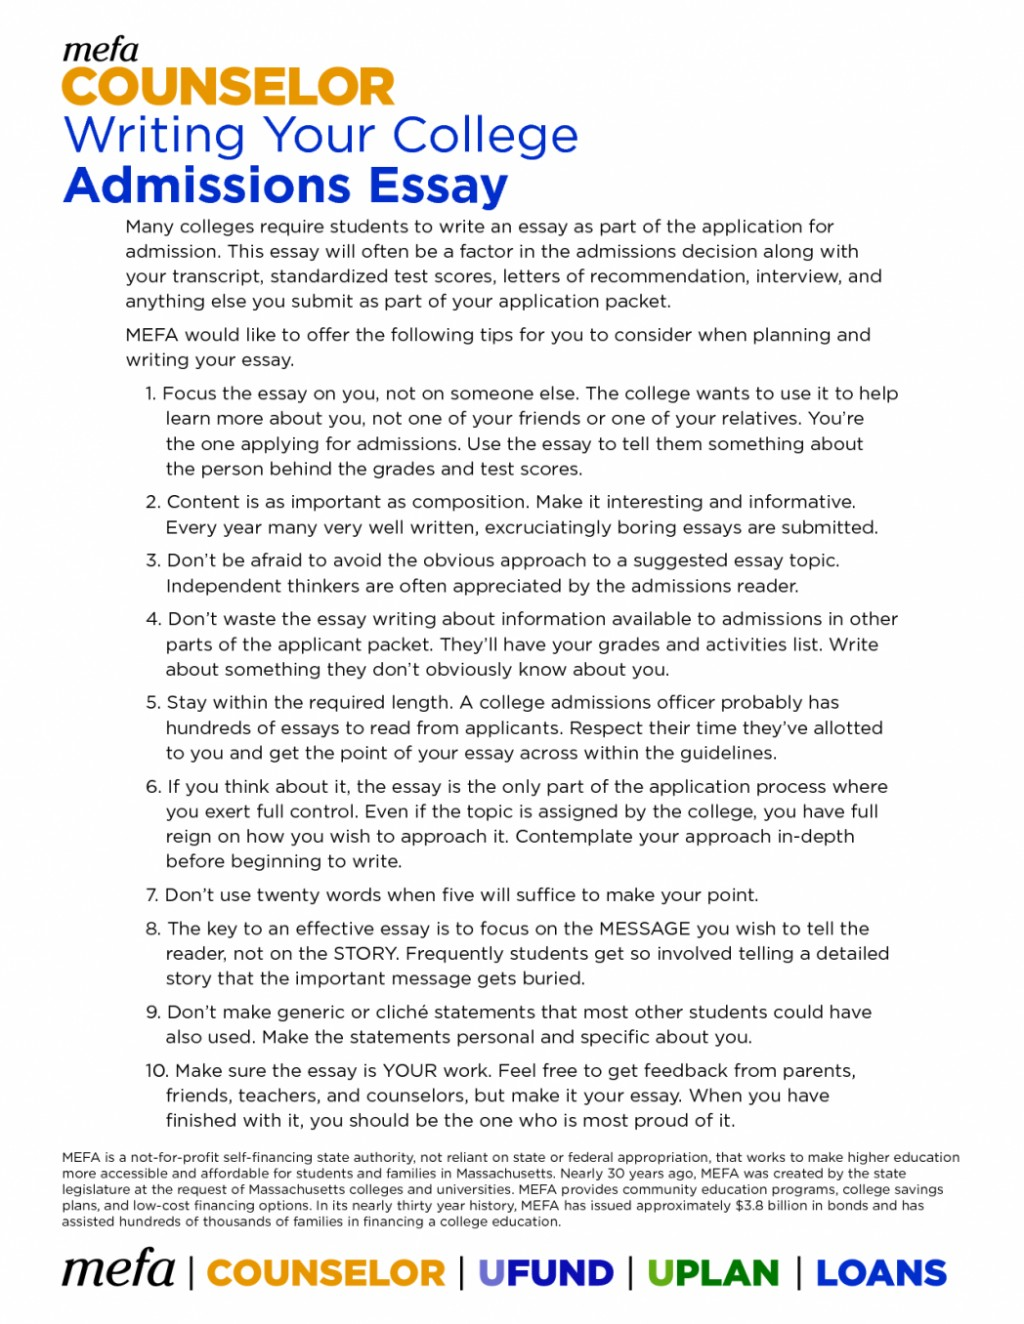 016 Essay Example College Writing Help High School How Many Paragraphs Should Application Wuaom Pages Words Long What About Formatted In Mla Format 1048x1356 Are An Unforgettable Introduction There Argumentative Large